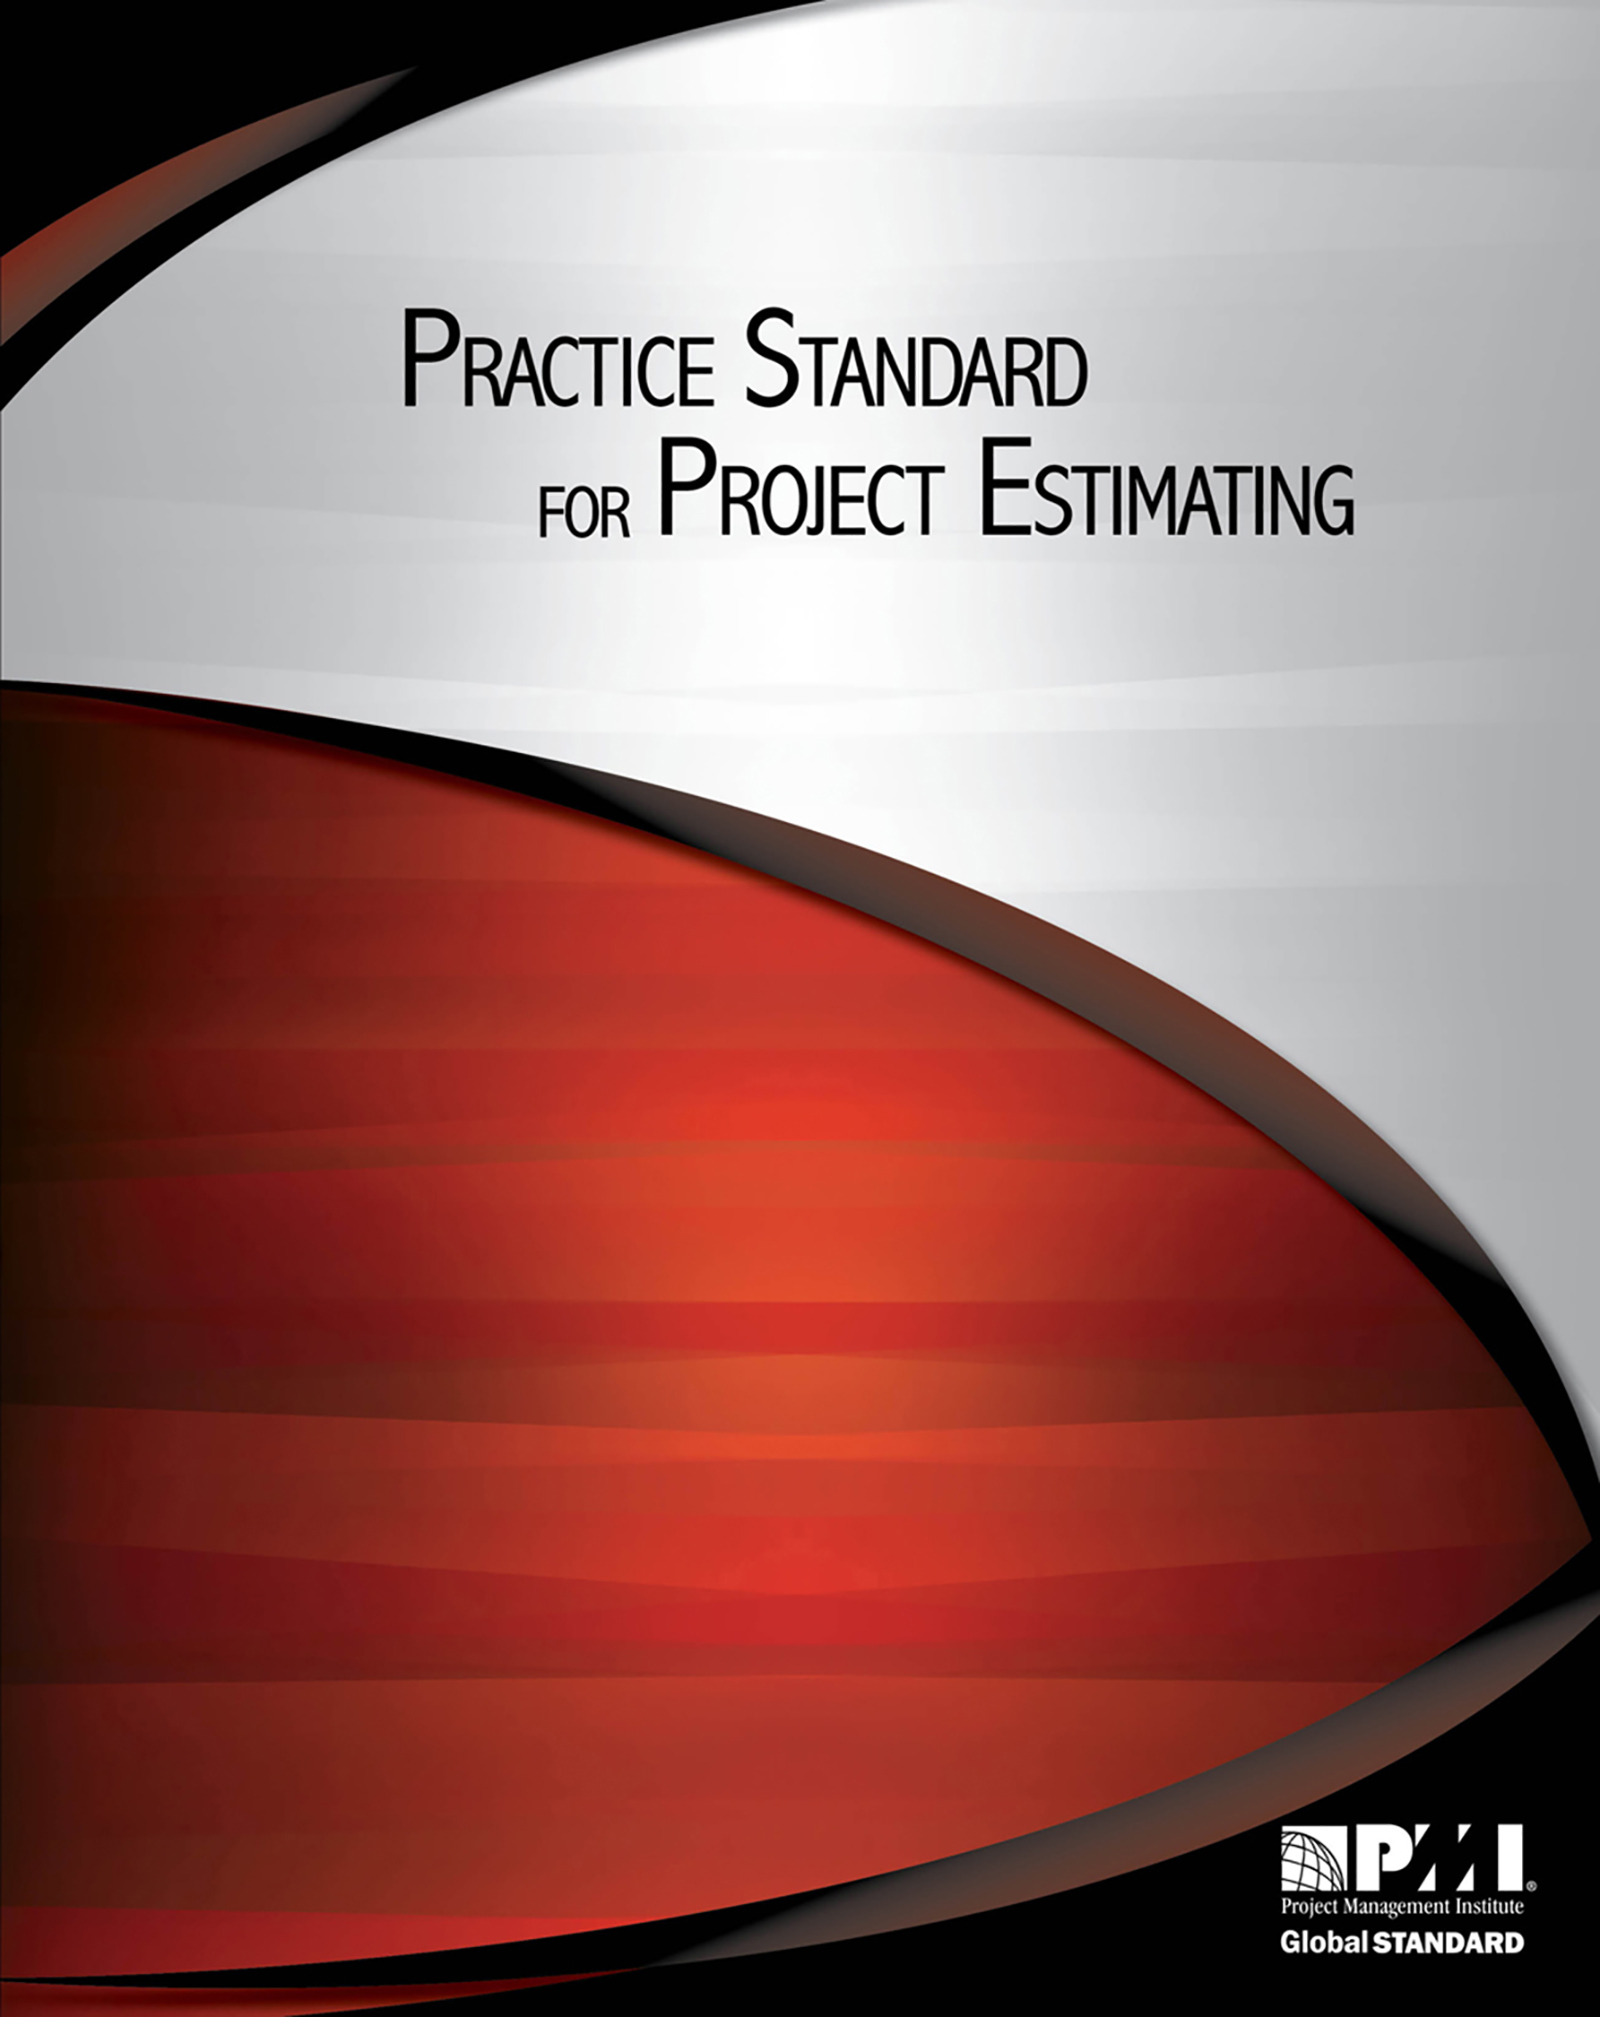 project estimating The team at my project estimating has spent over 15 years in the building industry, ensuring that the estimate we provide represents real world building costs.